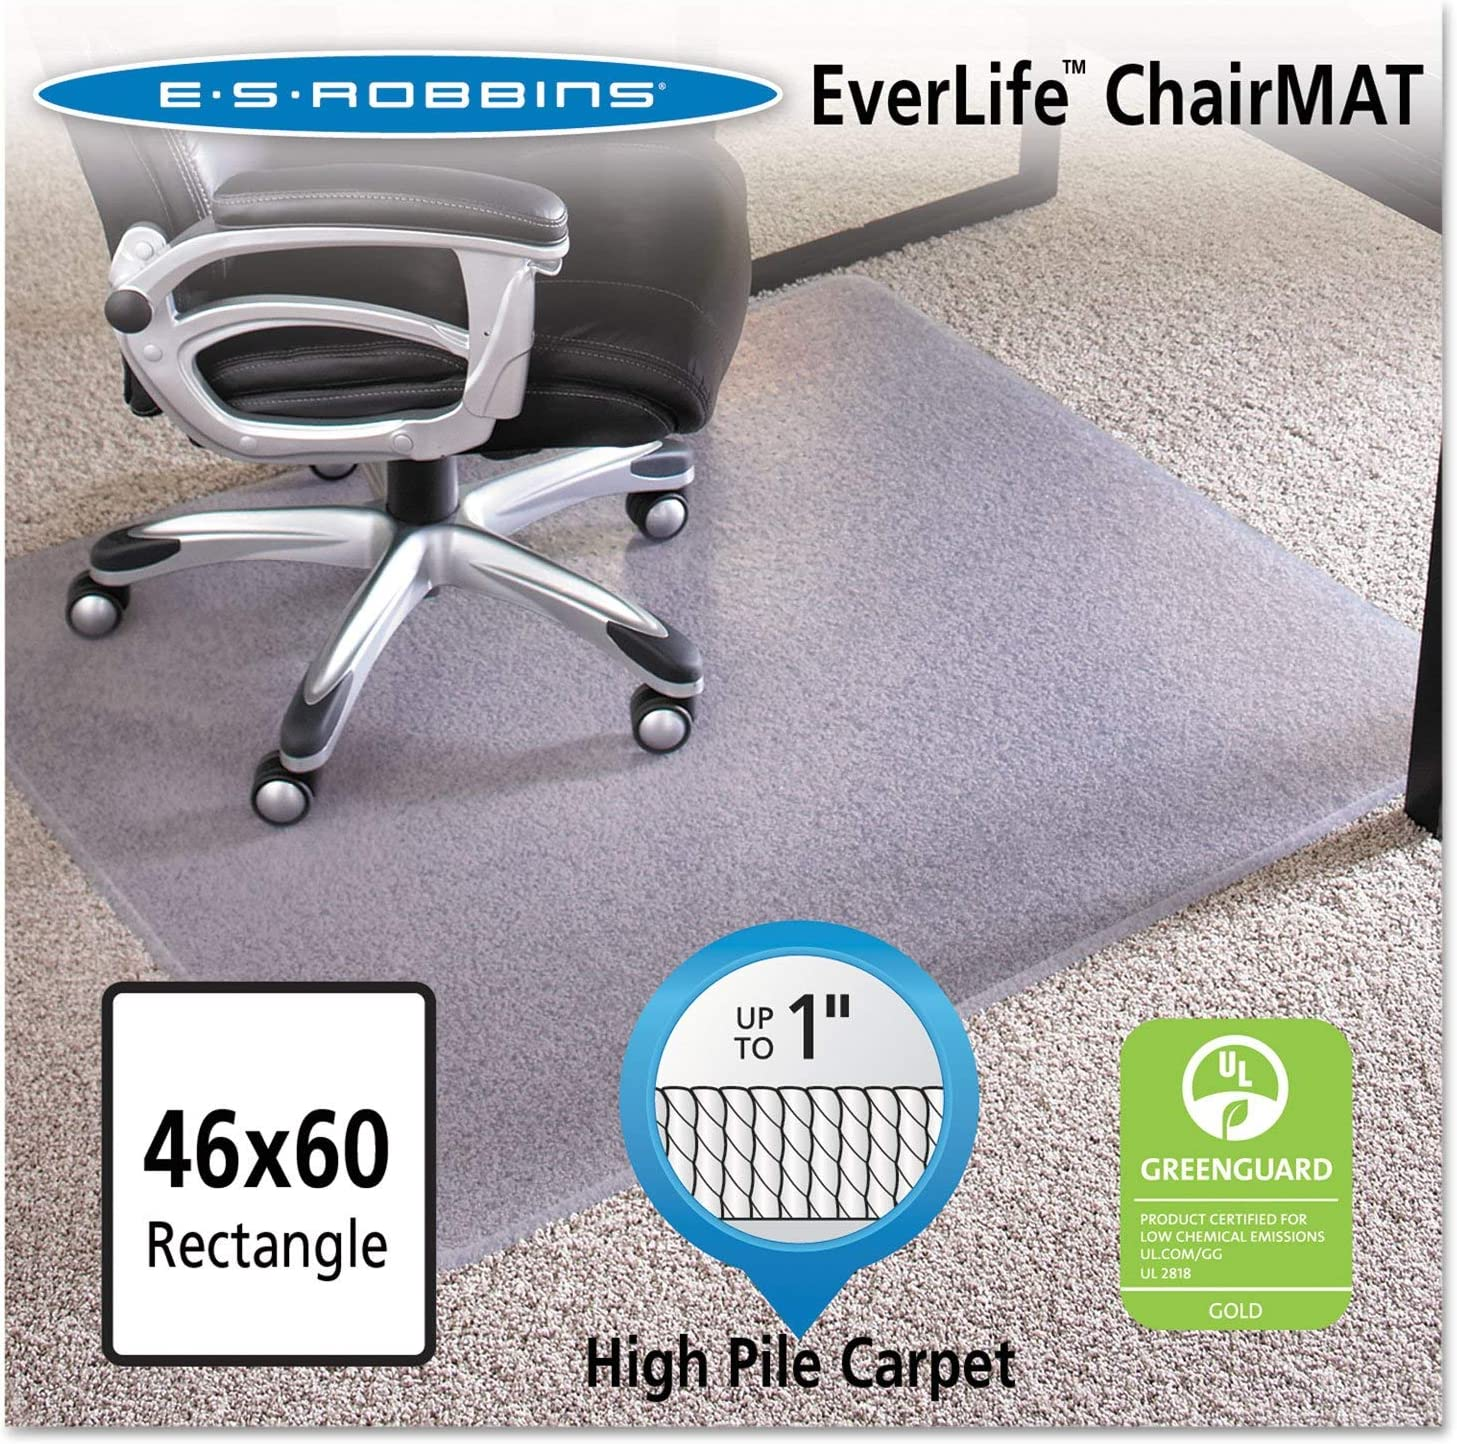 46×60 Rectangle Chair Mat, Performance Series AnchorBar for Carpet up to 1 Inch